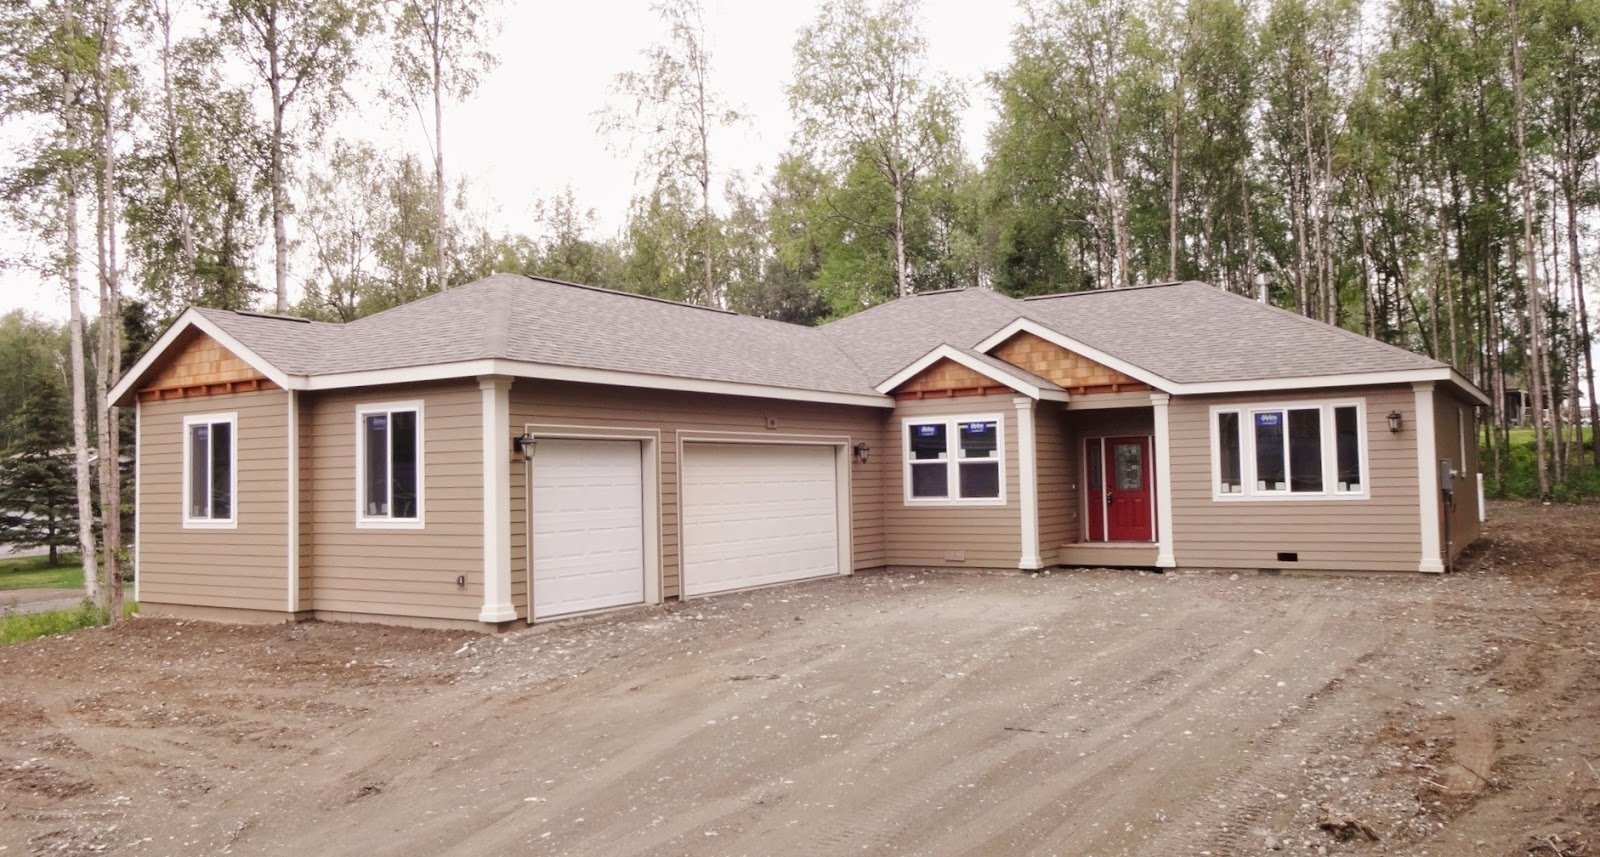 http://ablazeaboutalaska.blogspot.com/2014/04/homes-for-sale-in-wasilla-new.html